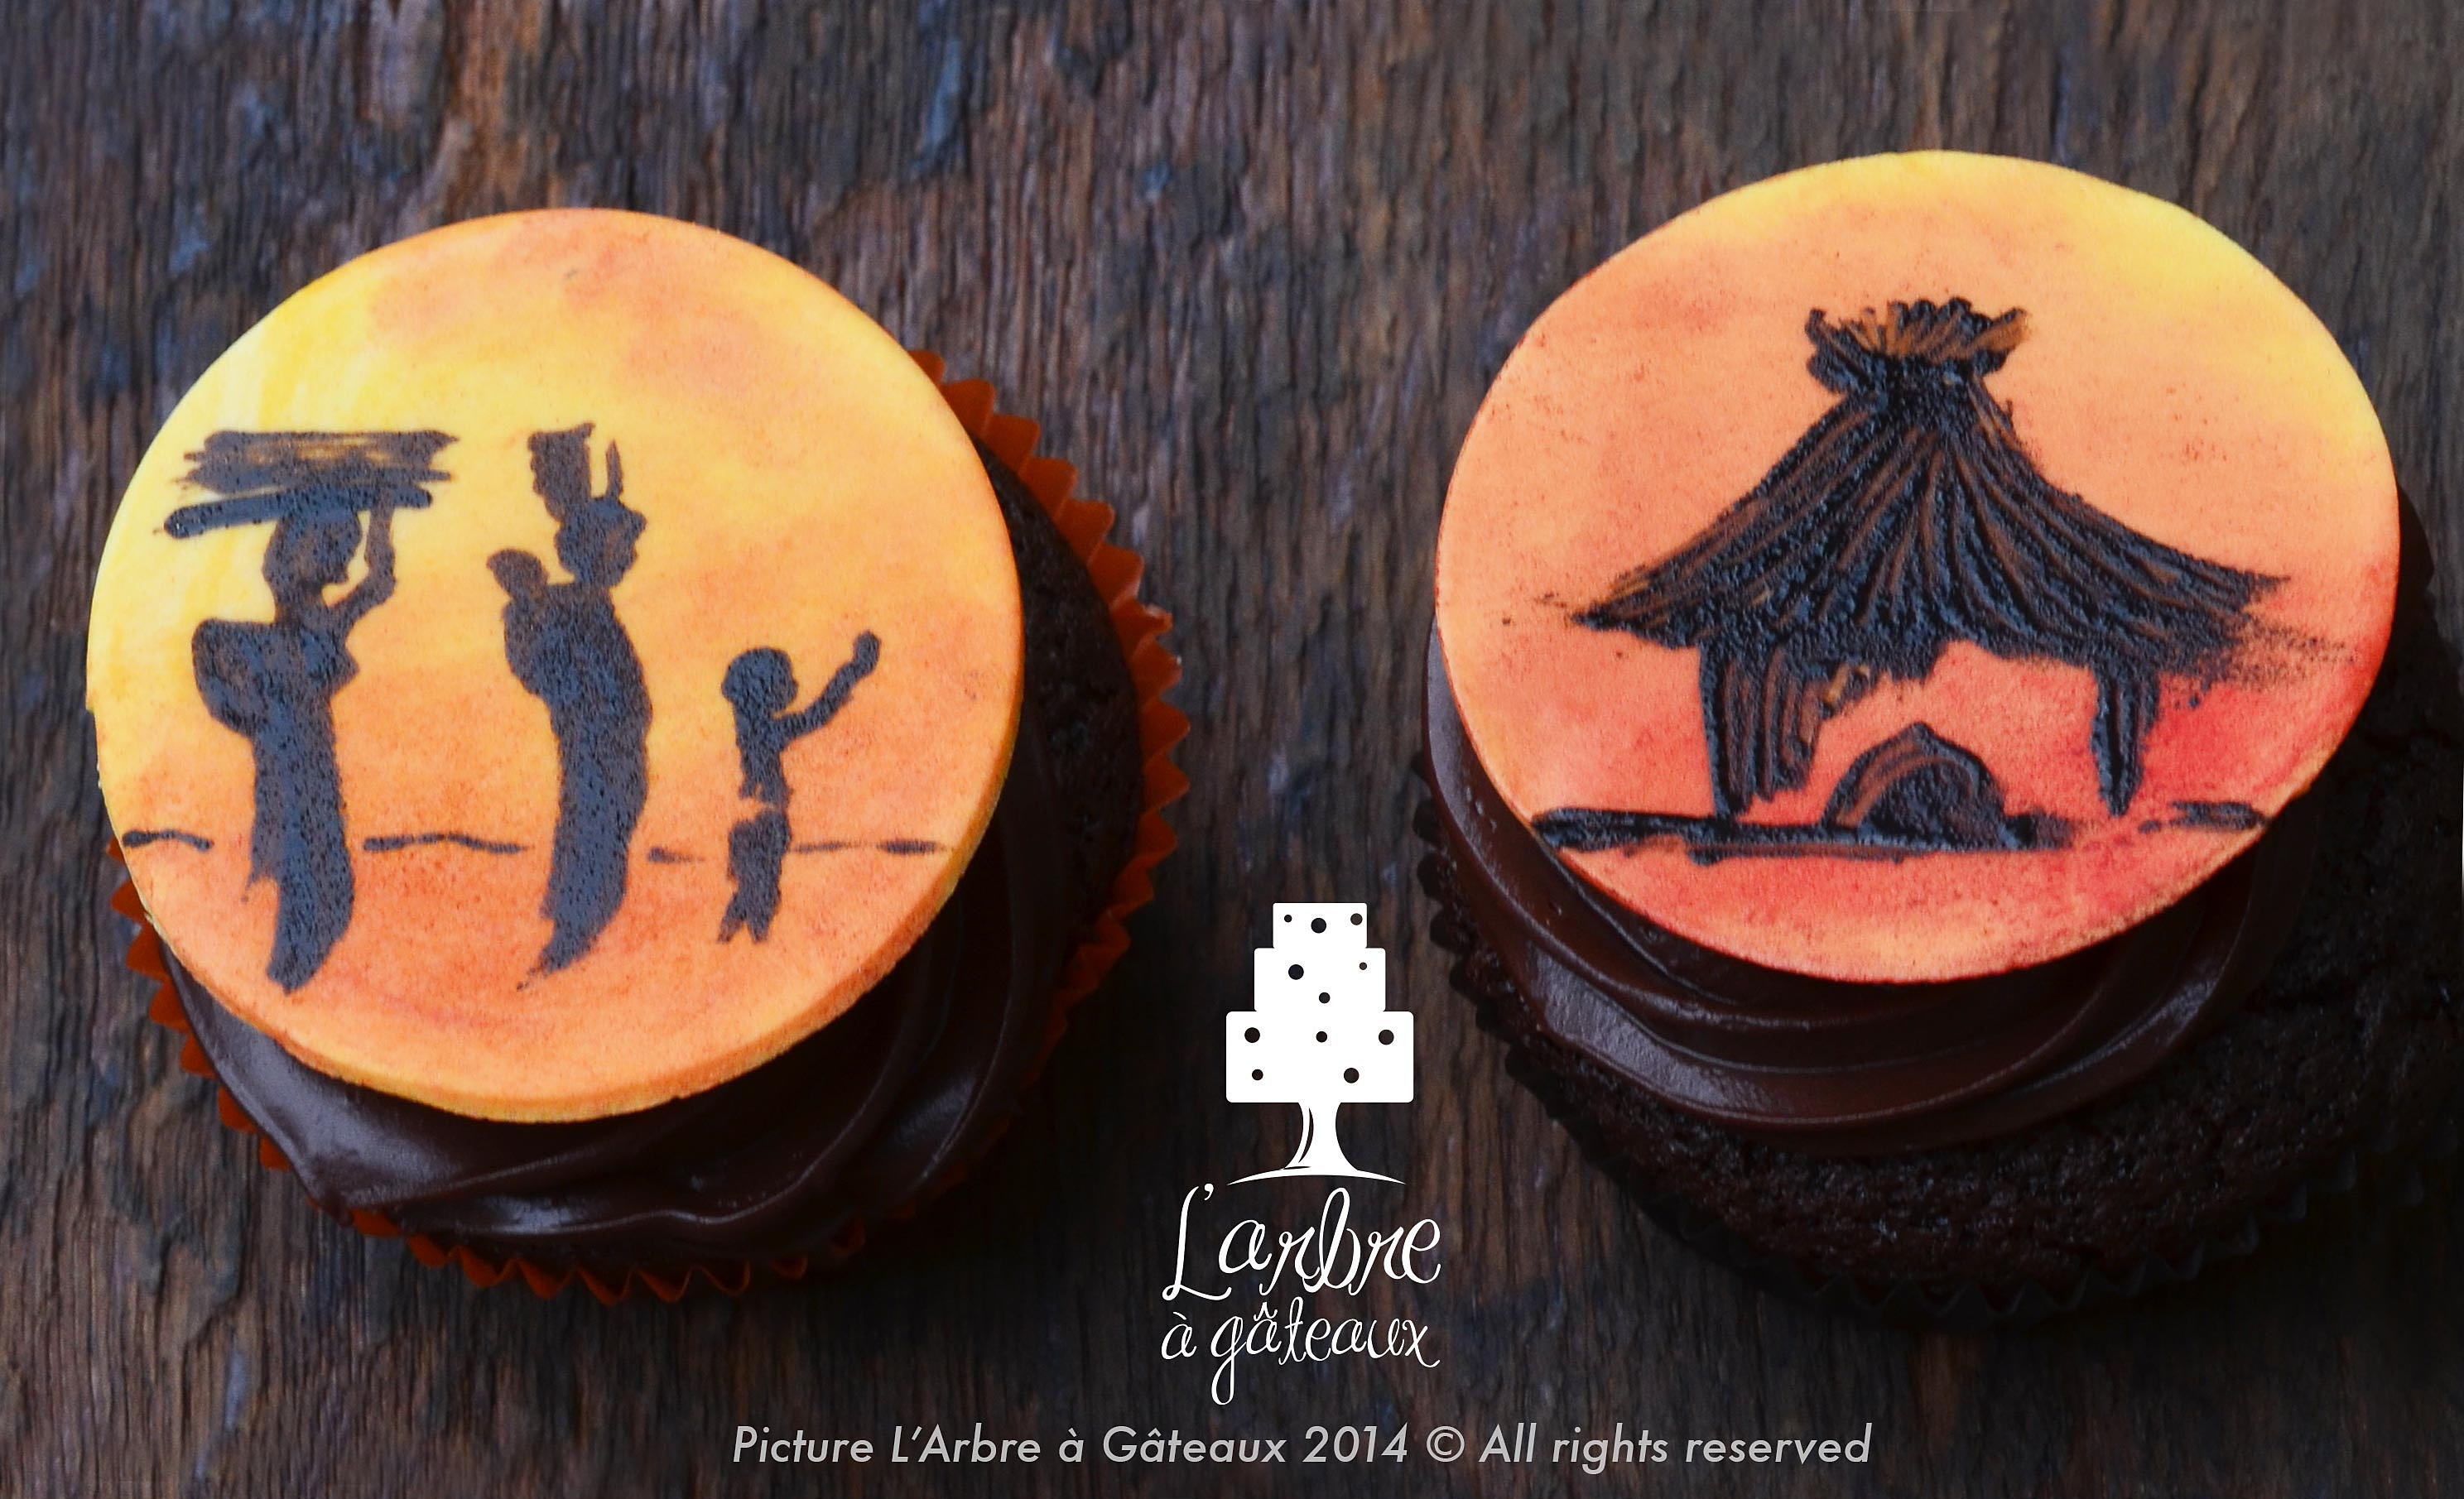 Magasin Cake Design Luxembourg : Ateliers, formation de cake design, pate a sucre, wedding ...